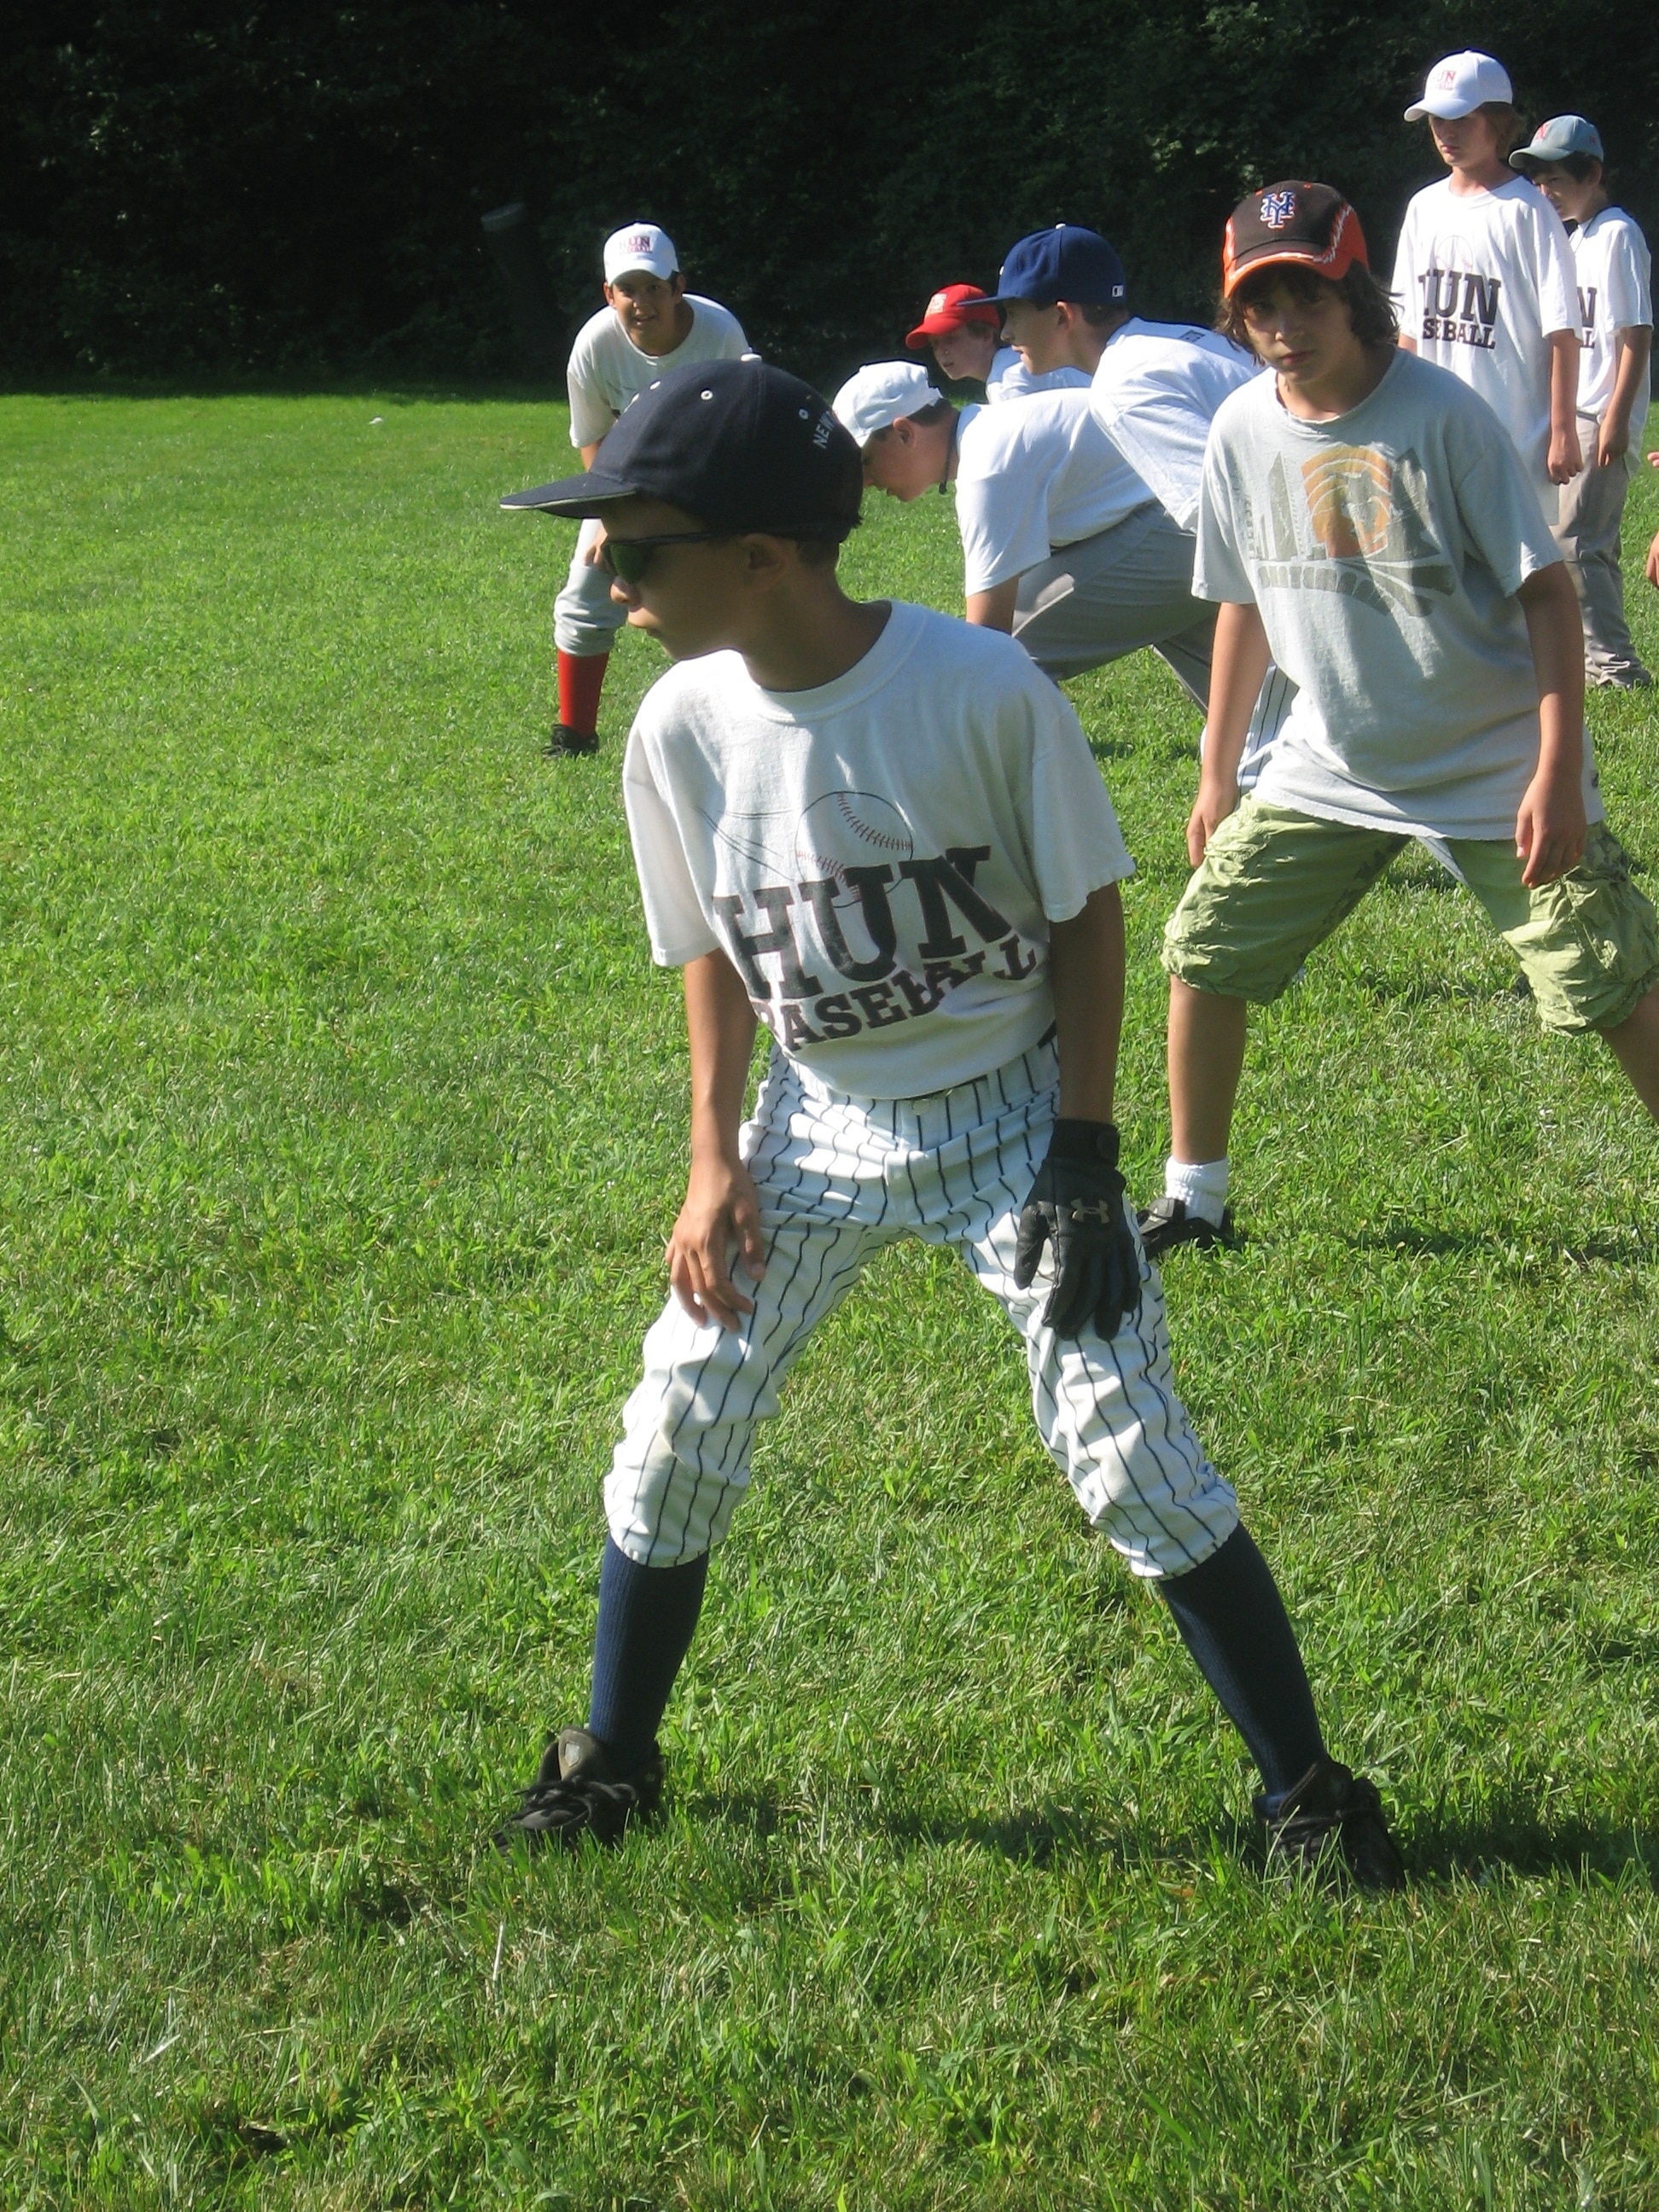 Summer Program - Baseball | The Hun School of Princeton Baseball Camps